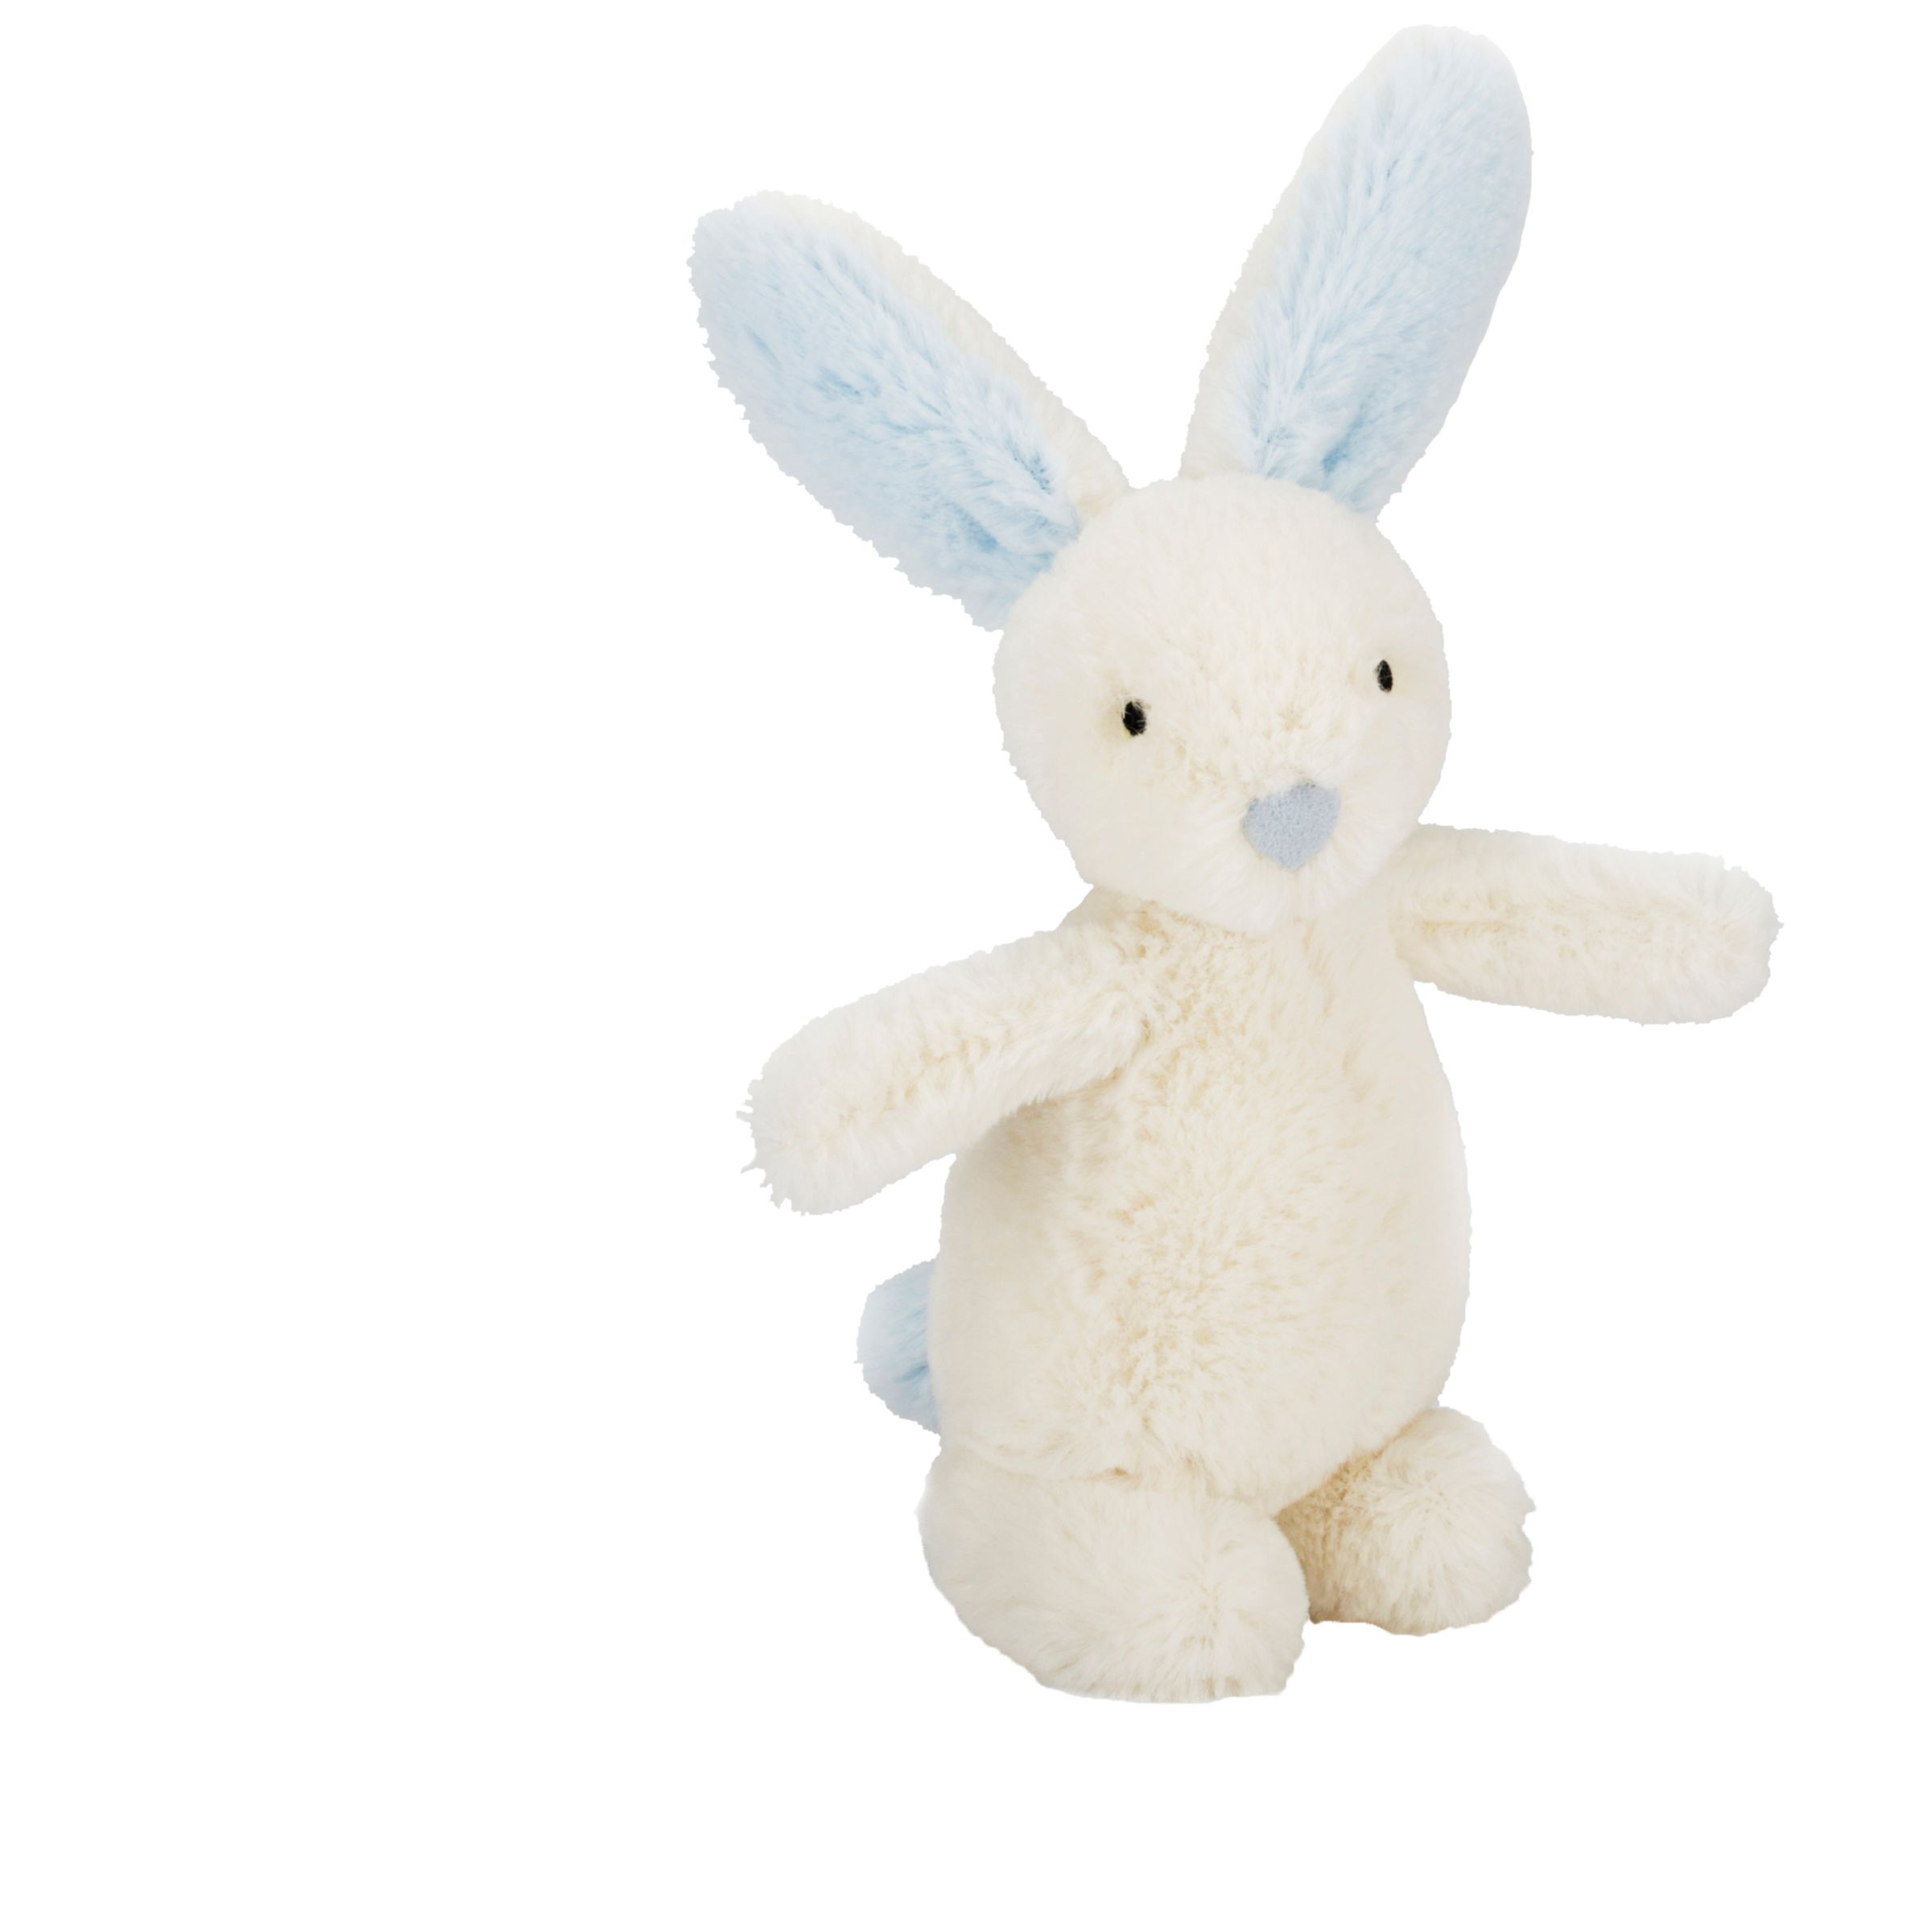 Buy Jellycat Bobtail Bunny Rattle, One Size, Cream/Blue John Lewis